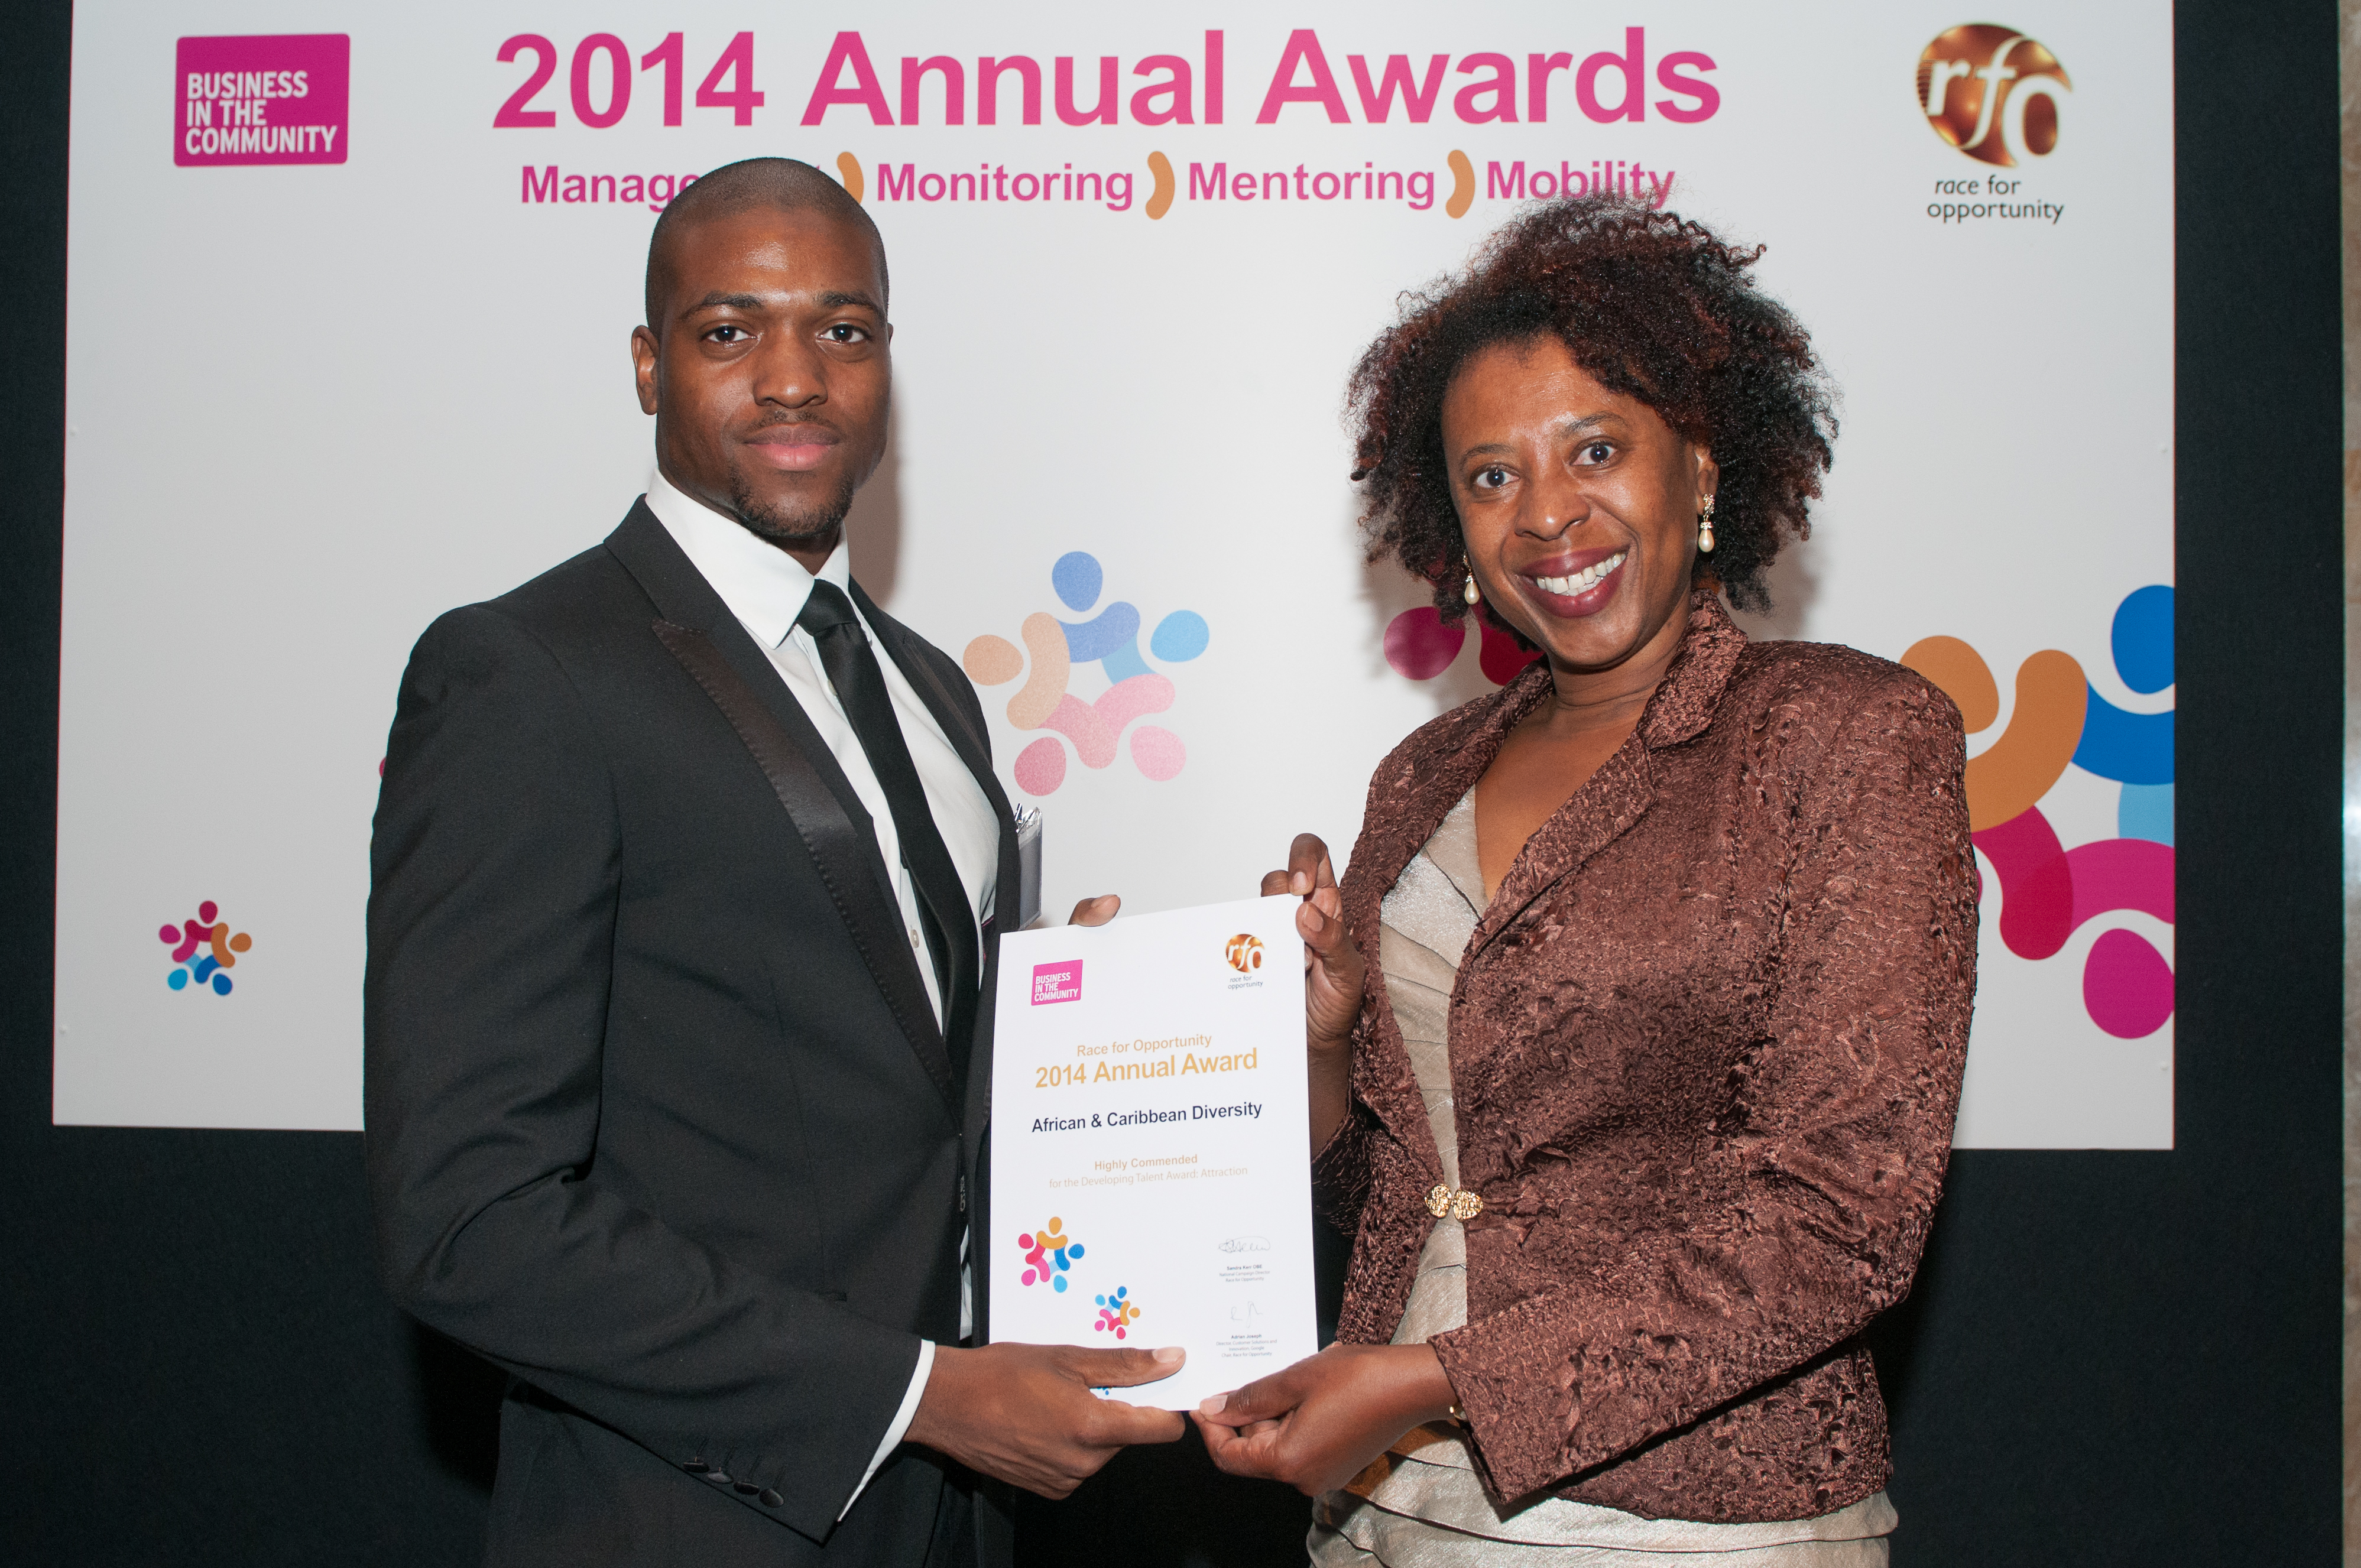 African & Caribbean Diversity Highly Commended At Race For Opportunity Awards